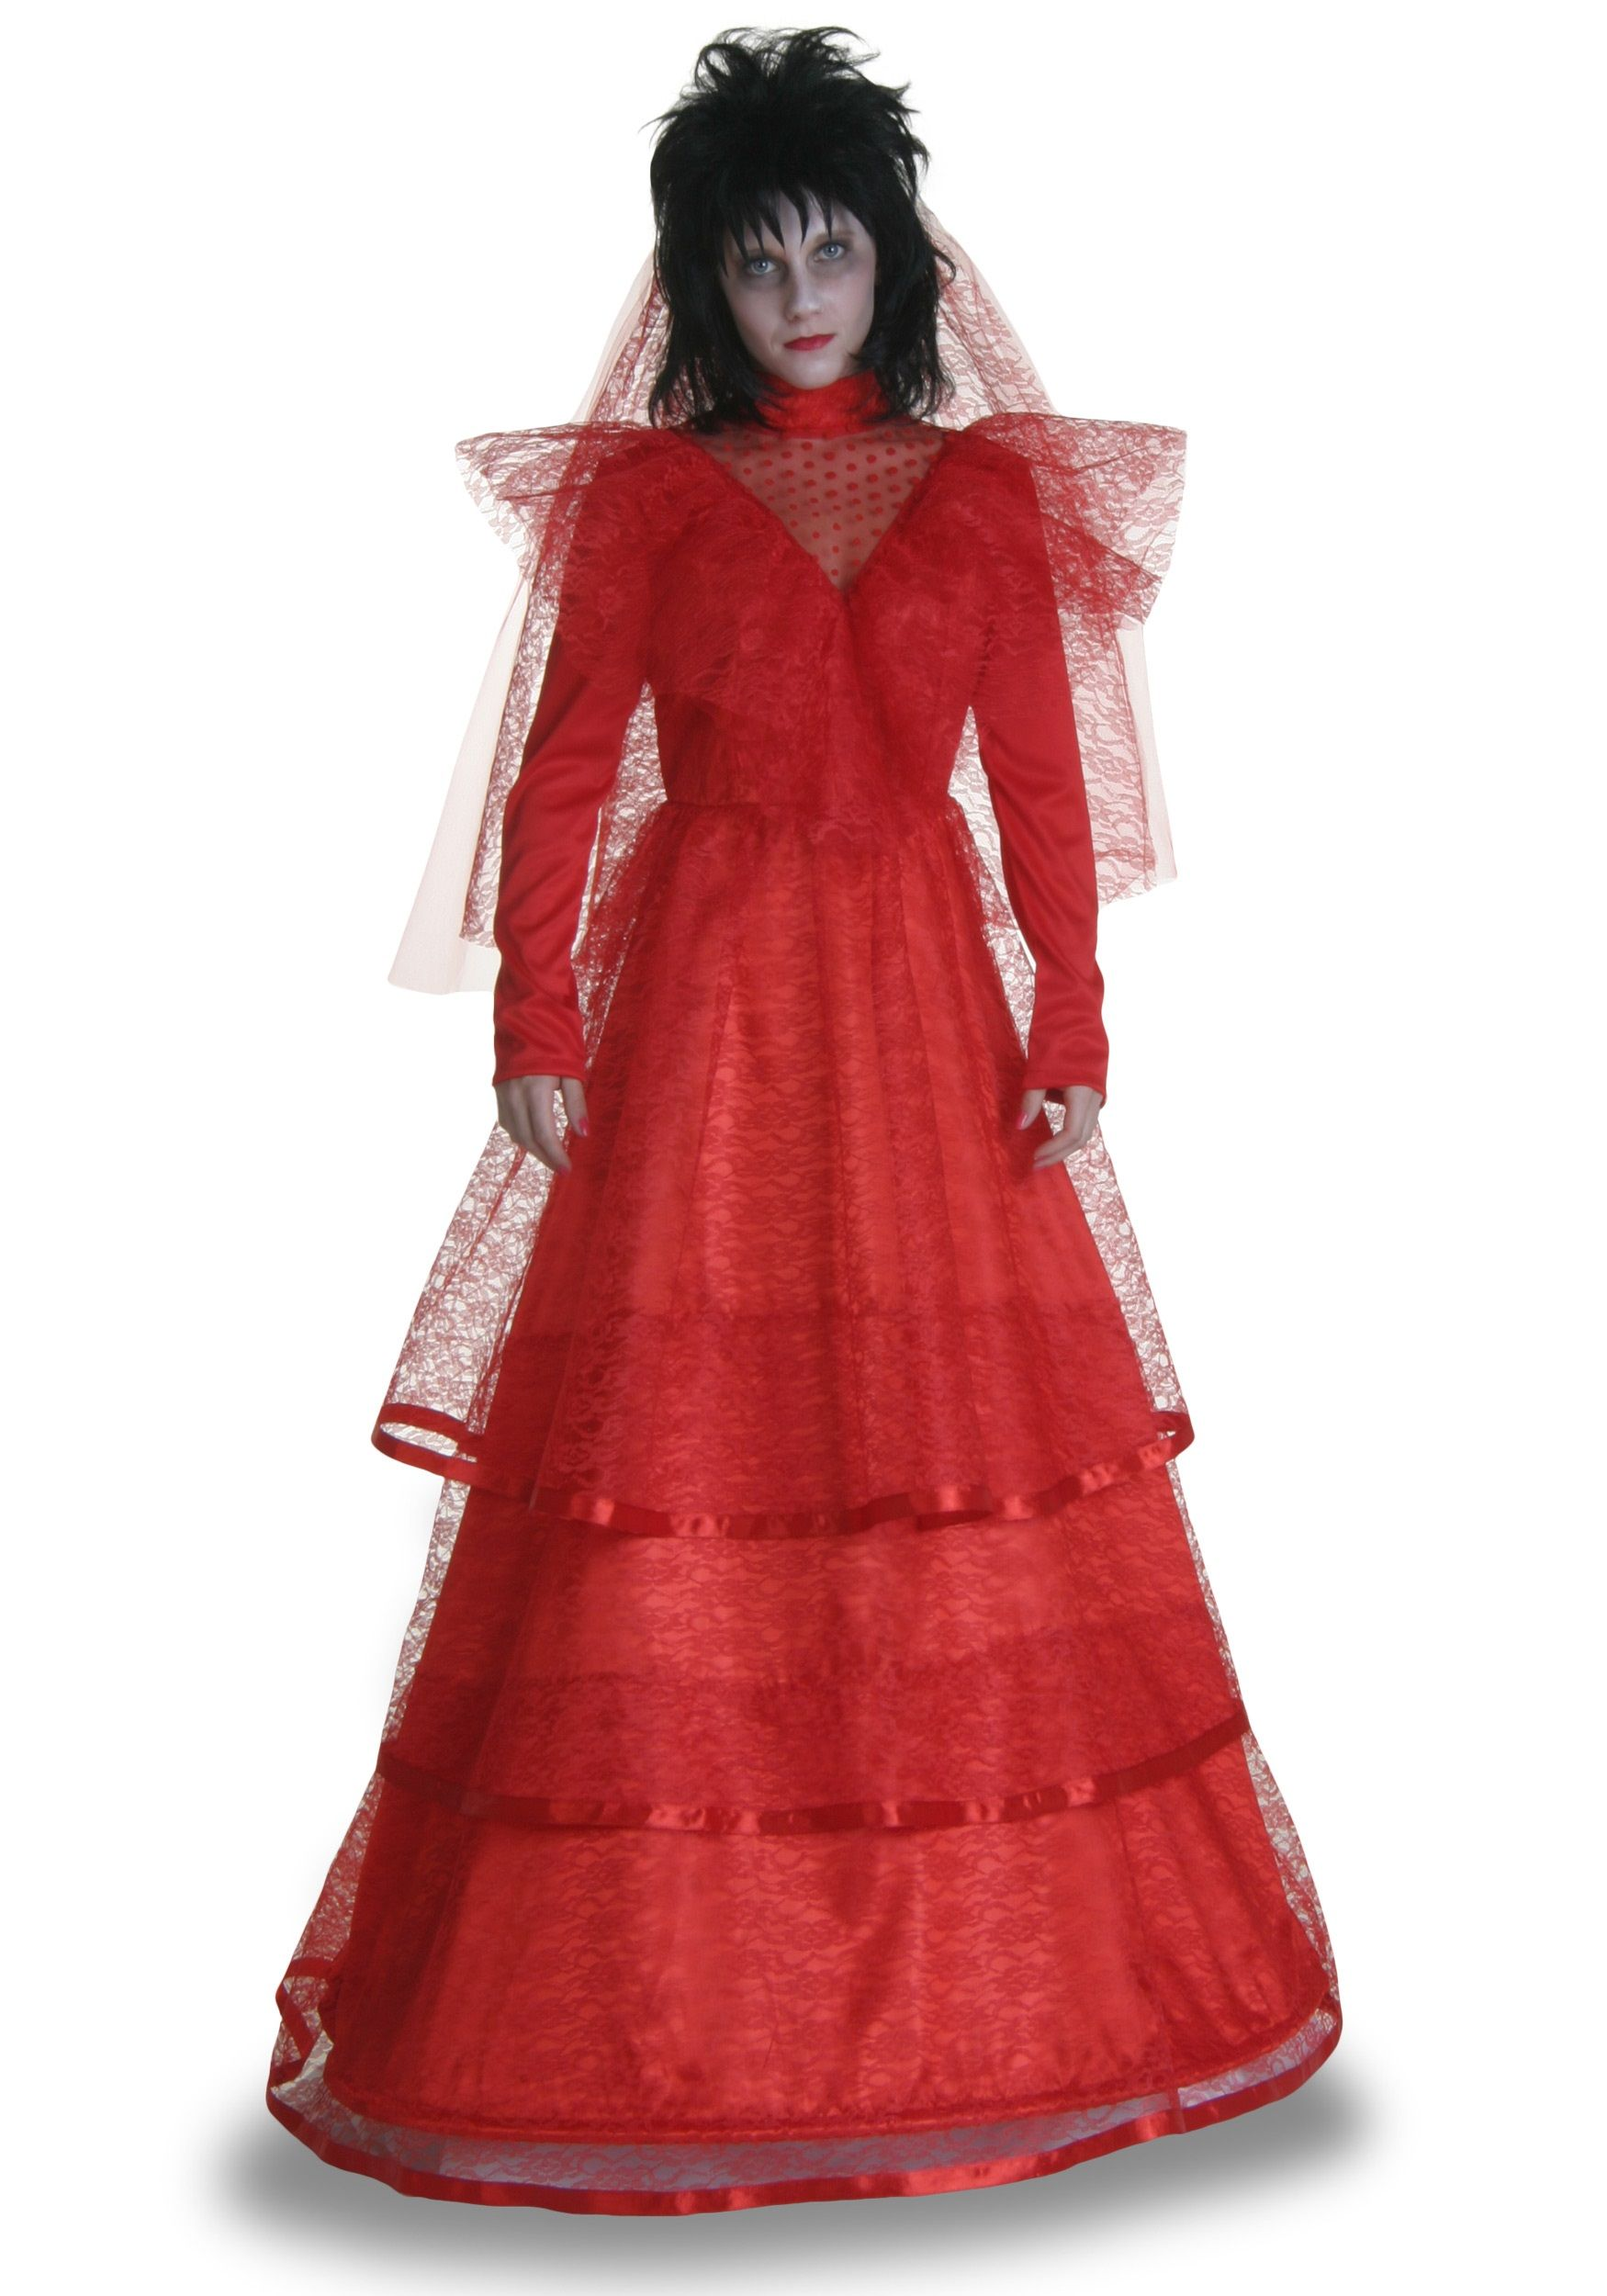 red dress for wedding Beetlejuice Lydia Deetz s Red Gothic Wedding Dress Halloween Party with Tim Burton